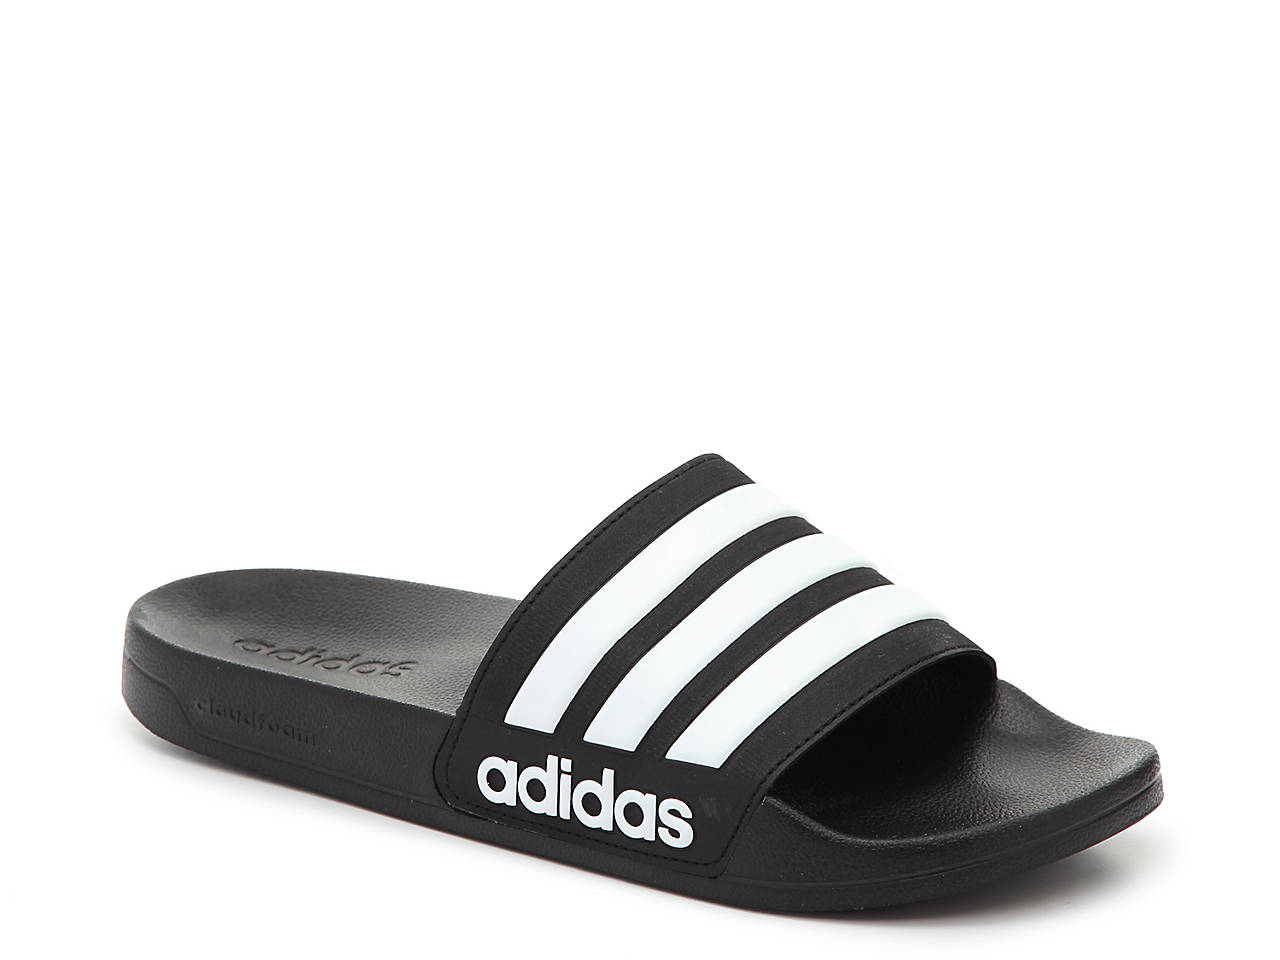 separation shoes 74bbe fa758 adidas Adilette Shower Slide Sandal - Men s Men s Shoes   DSW